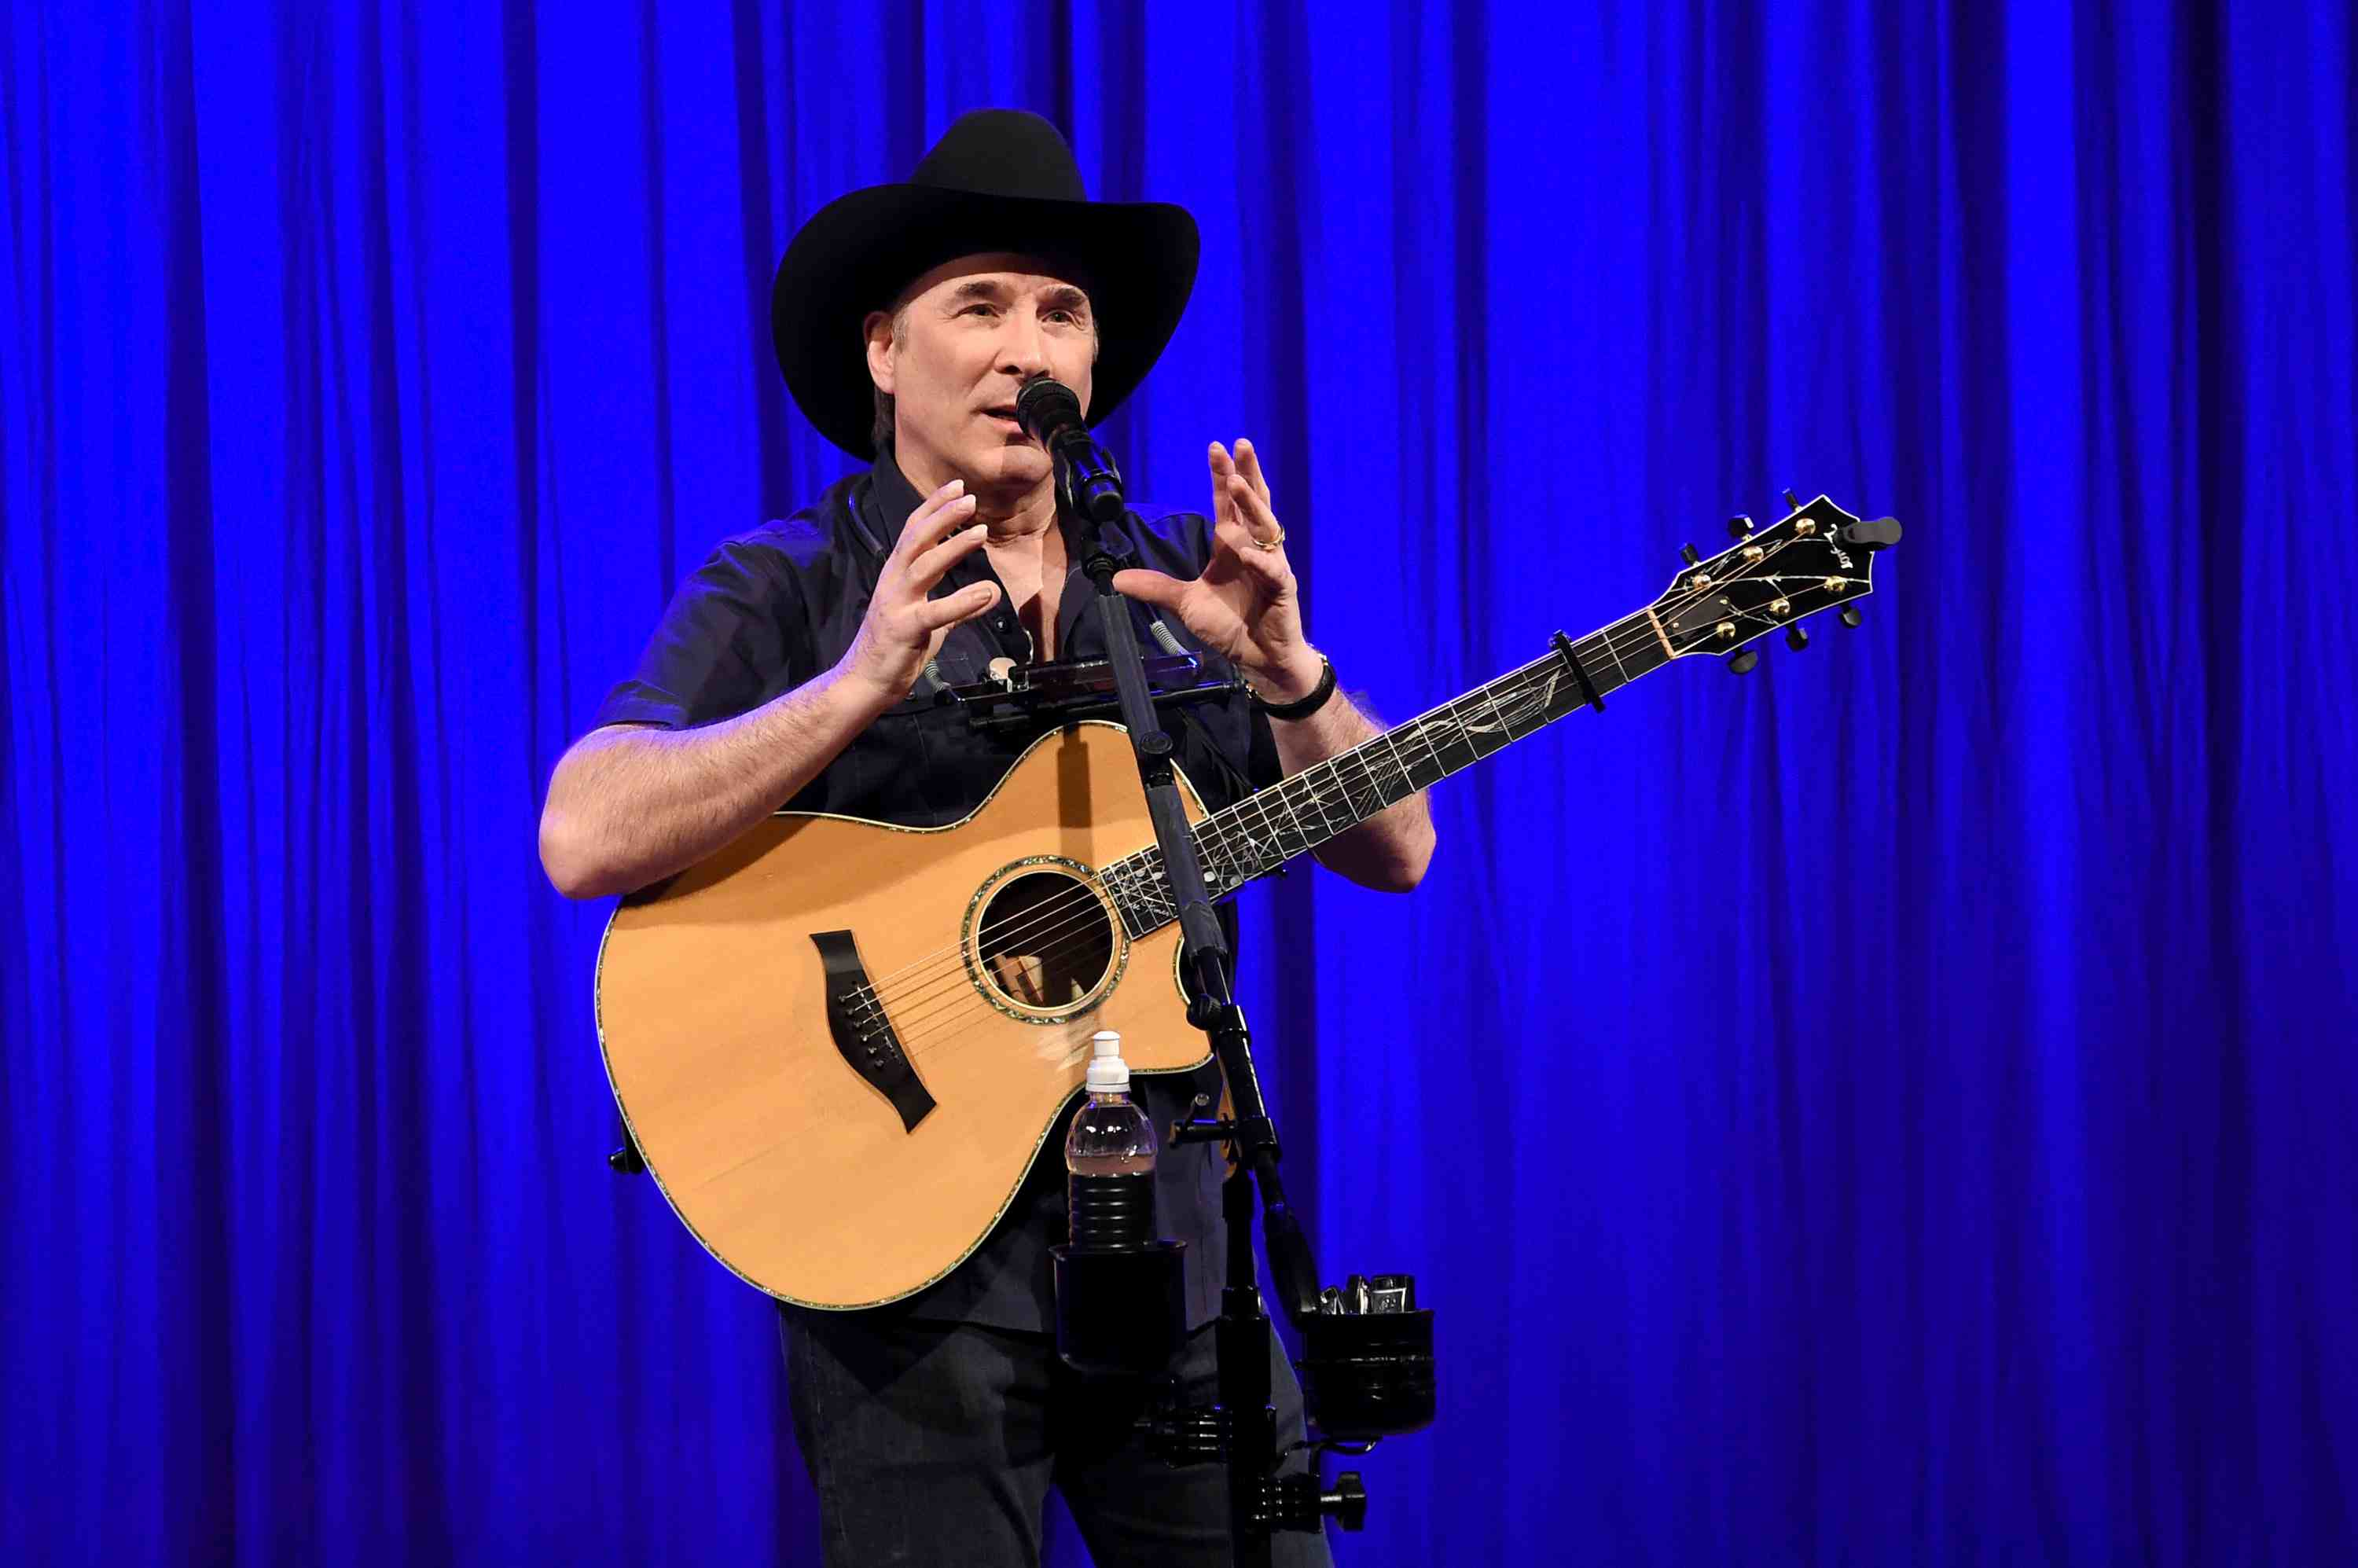 Clint Black performing in front of a blue stage curtain.